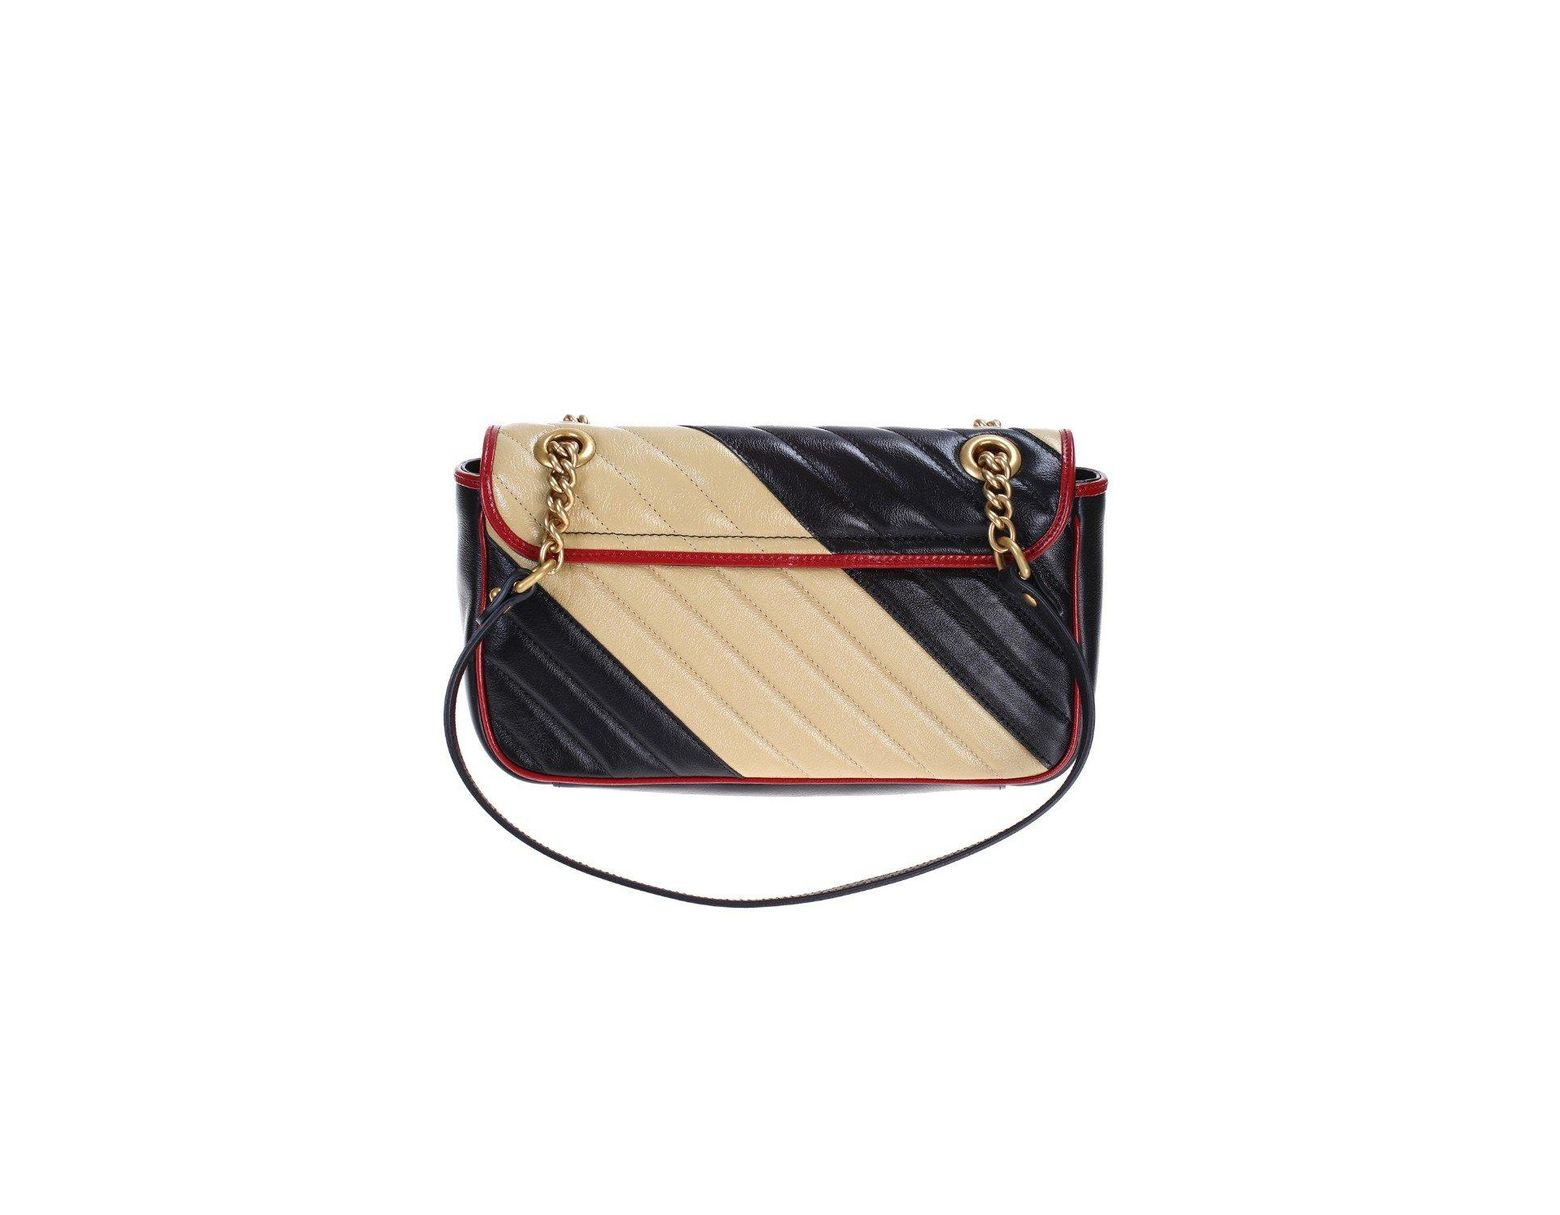 c054fd698f8 Gucci Gg Marmont Shoulder Bag In Matelassé Leather With Maxi Beige And  Black Stripes in Black - Lyst